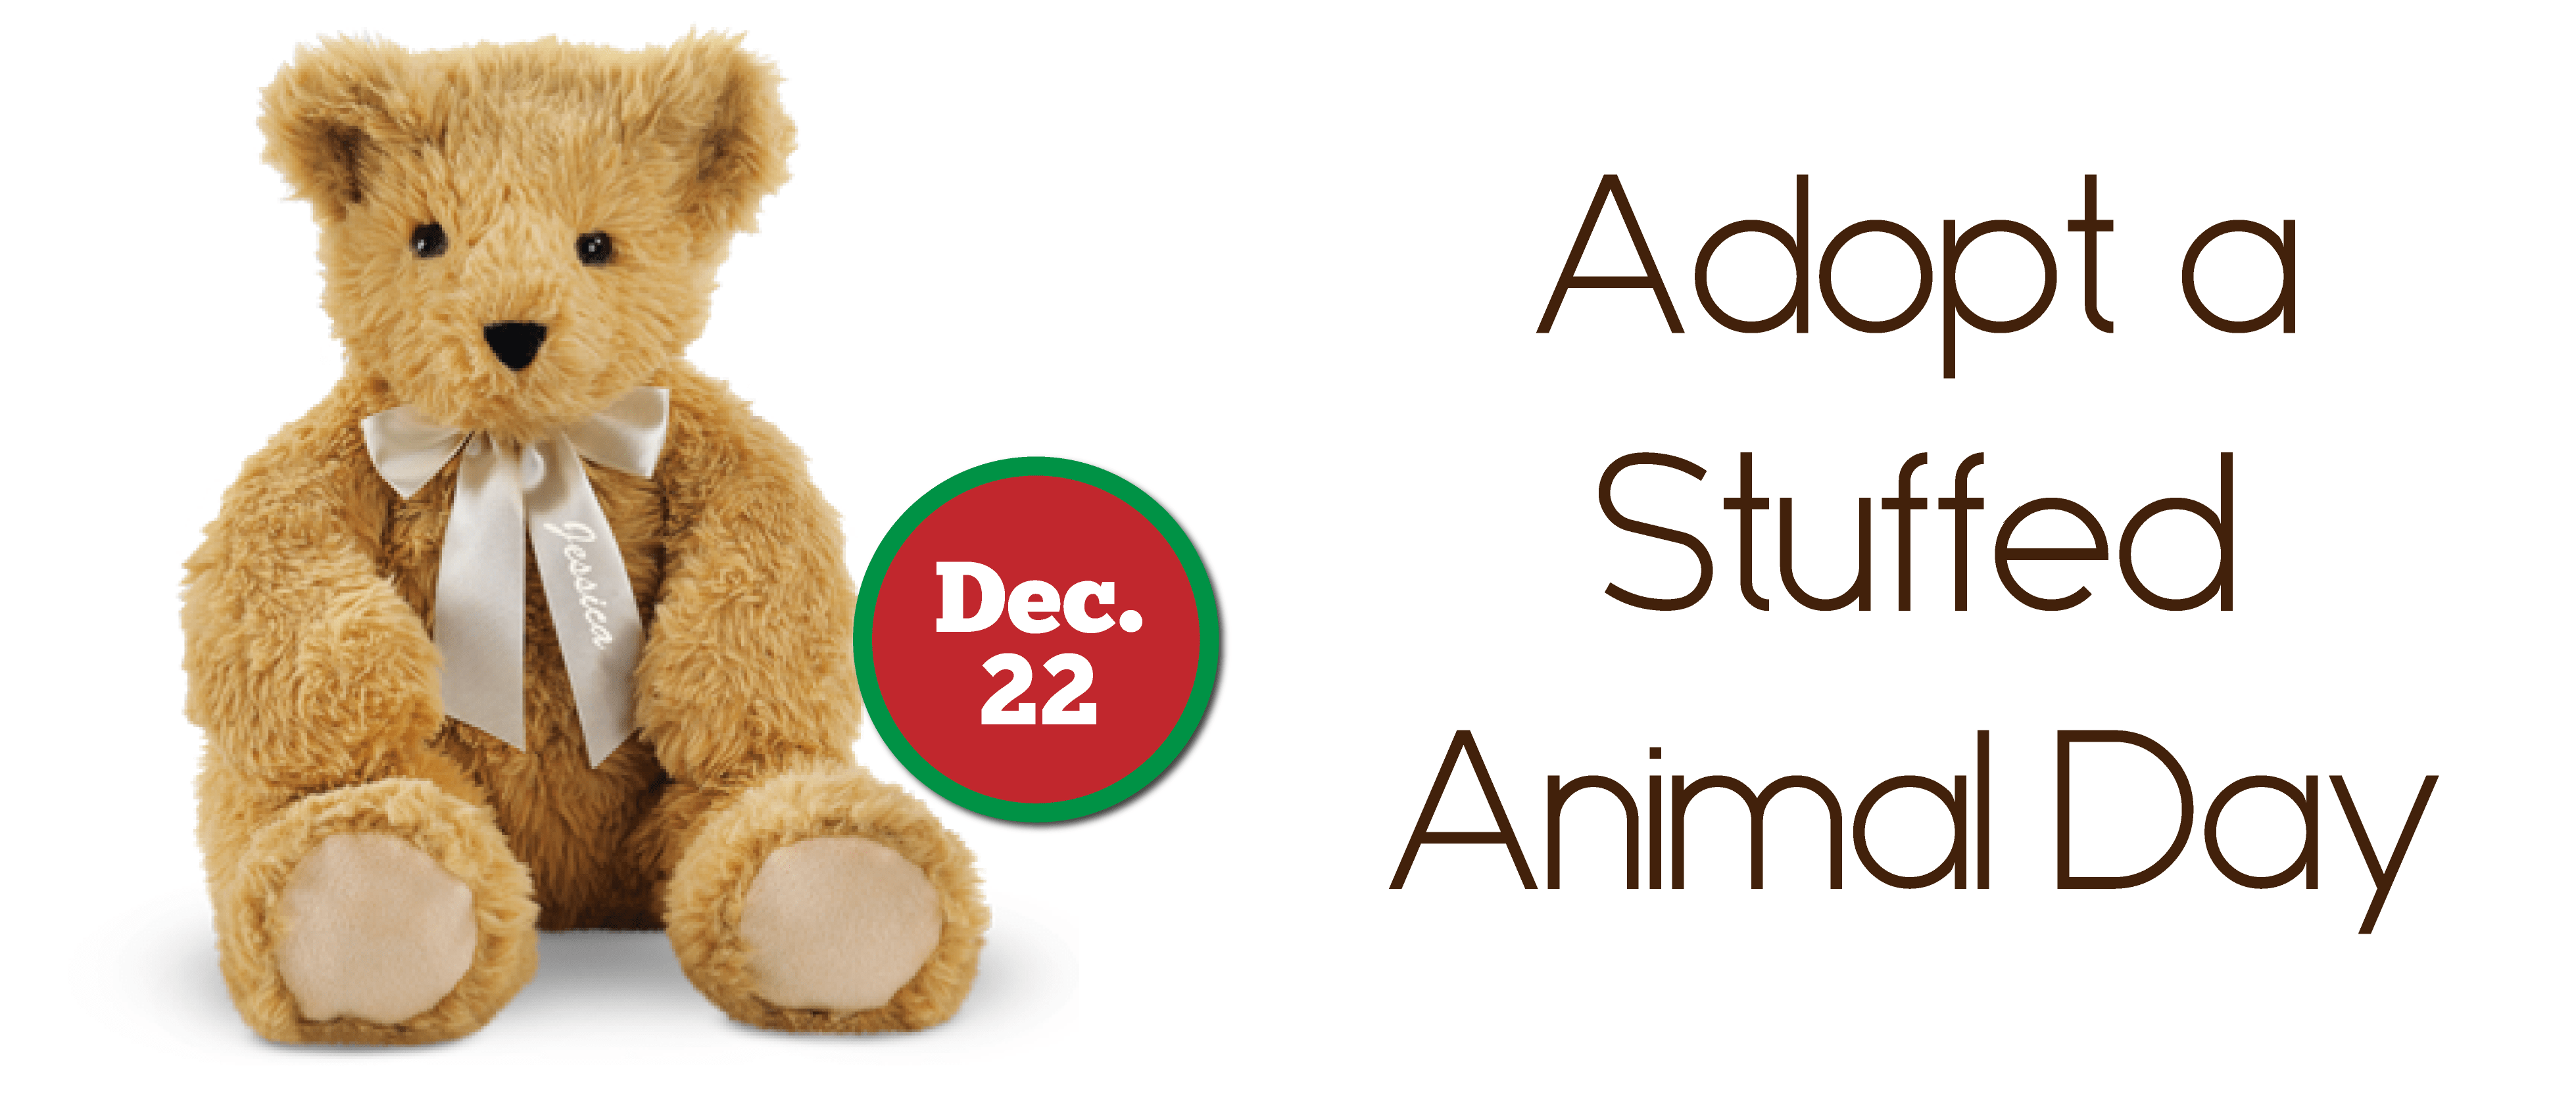 adopt-a-stuff-animal-wp